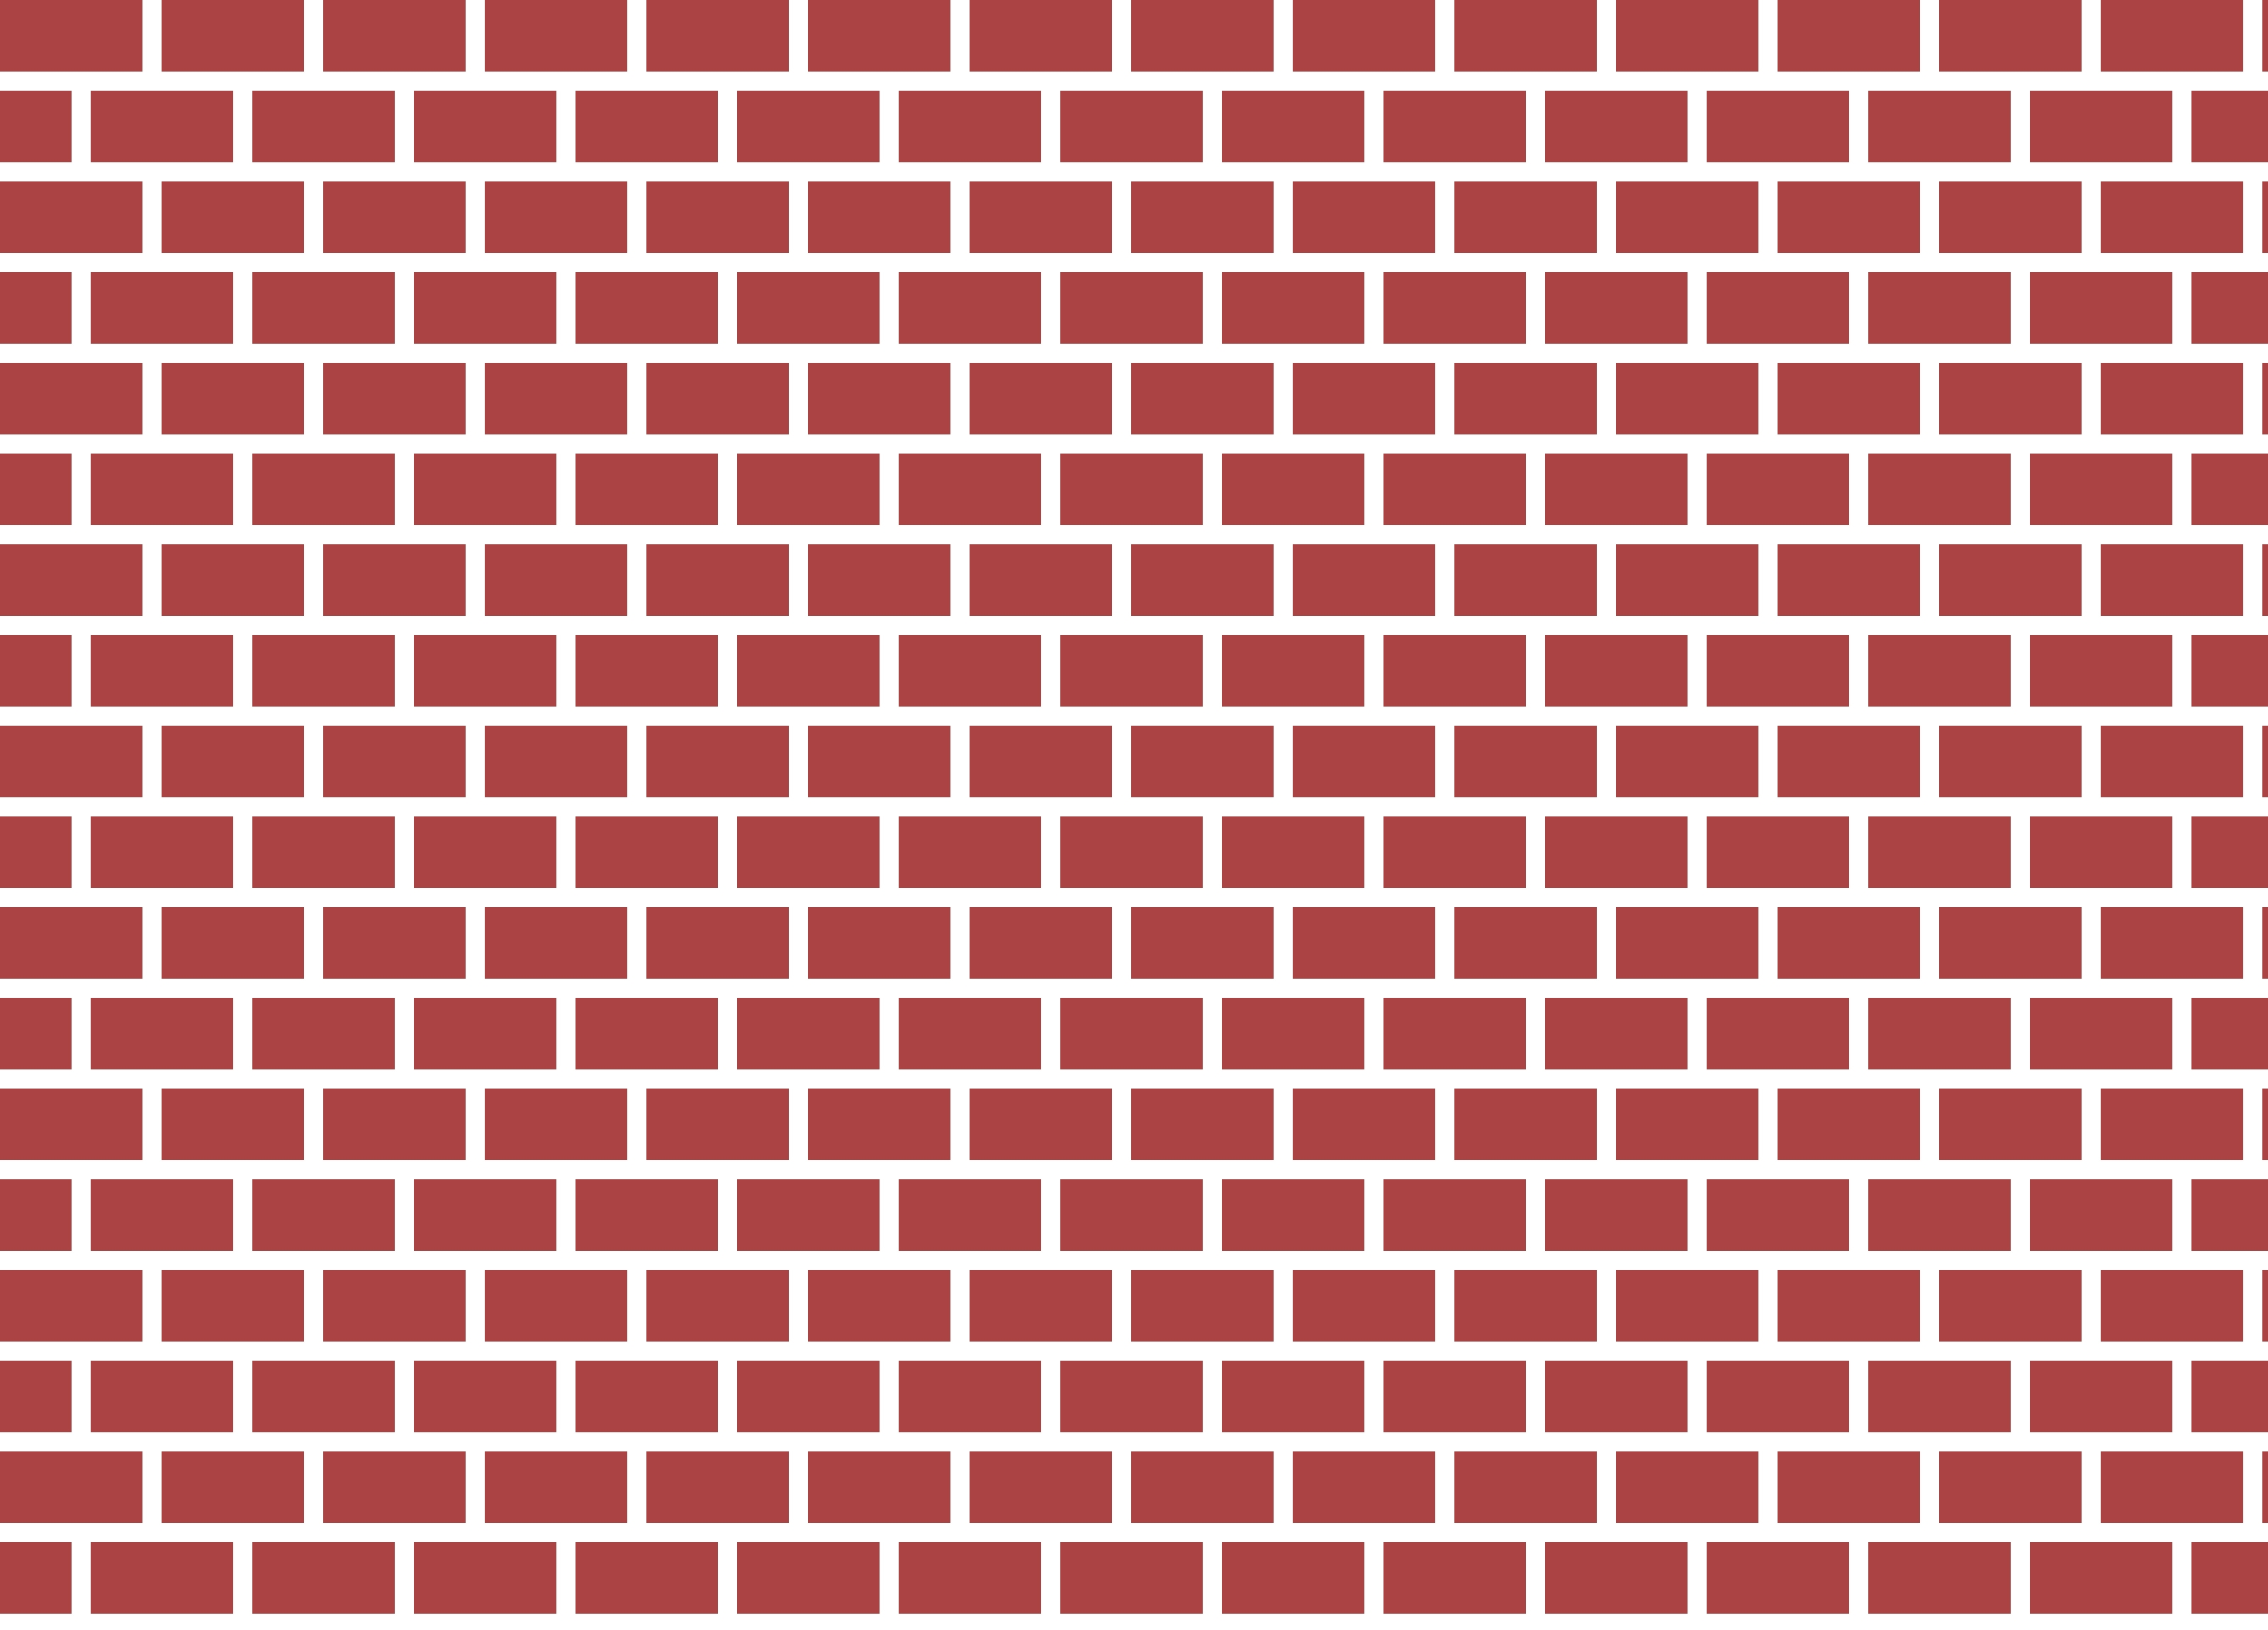 Brick clipart. Best of collection digital